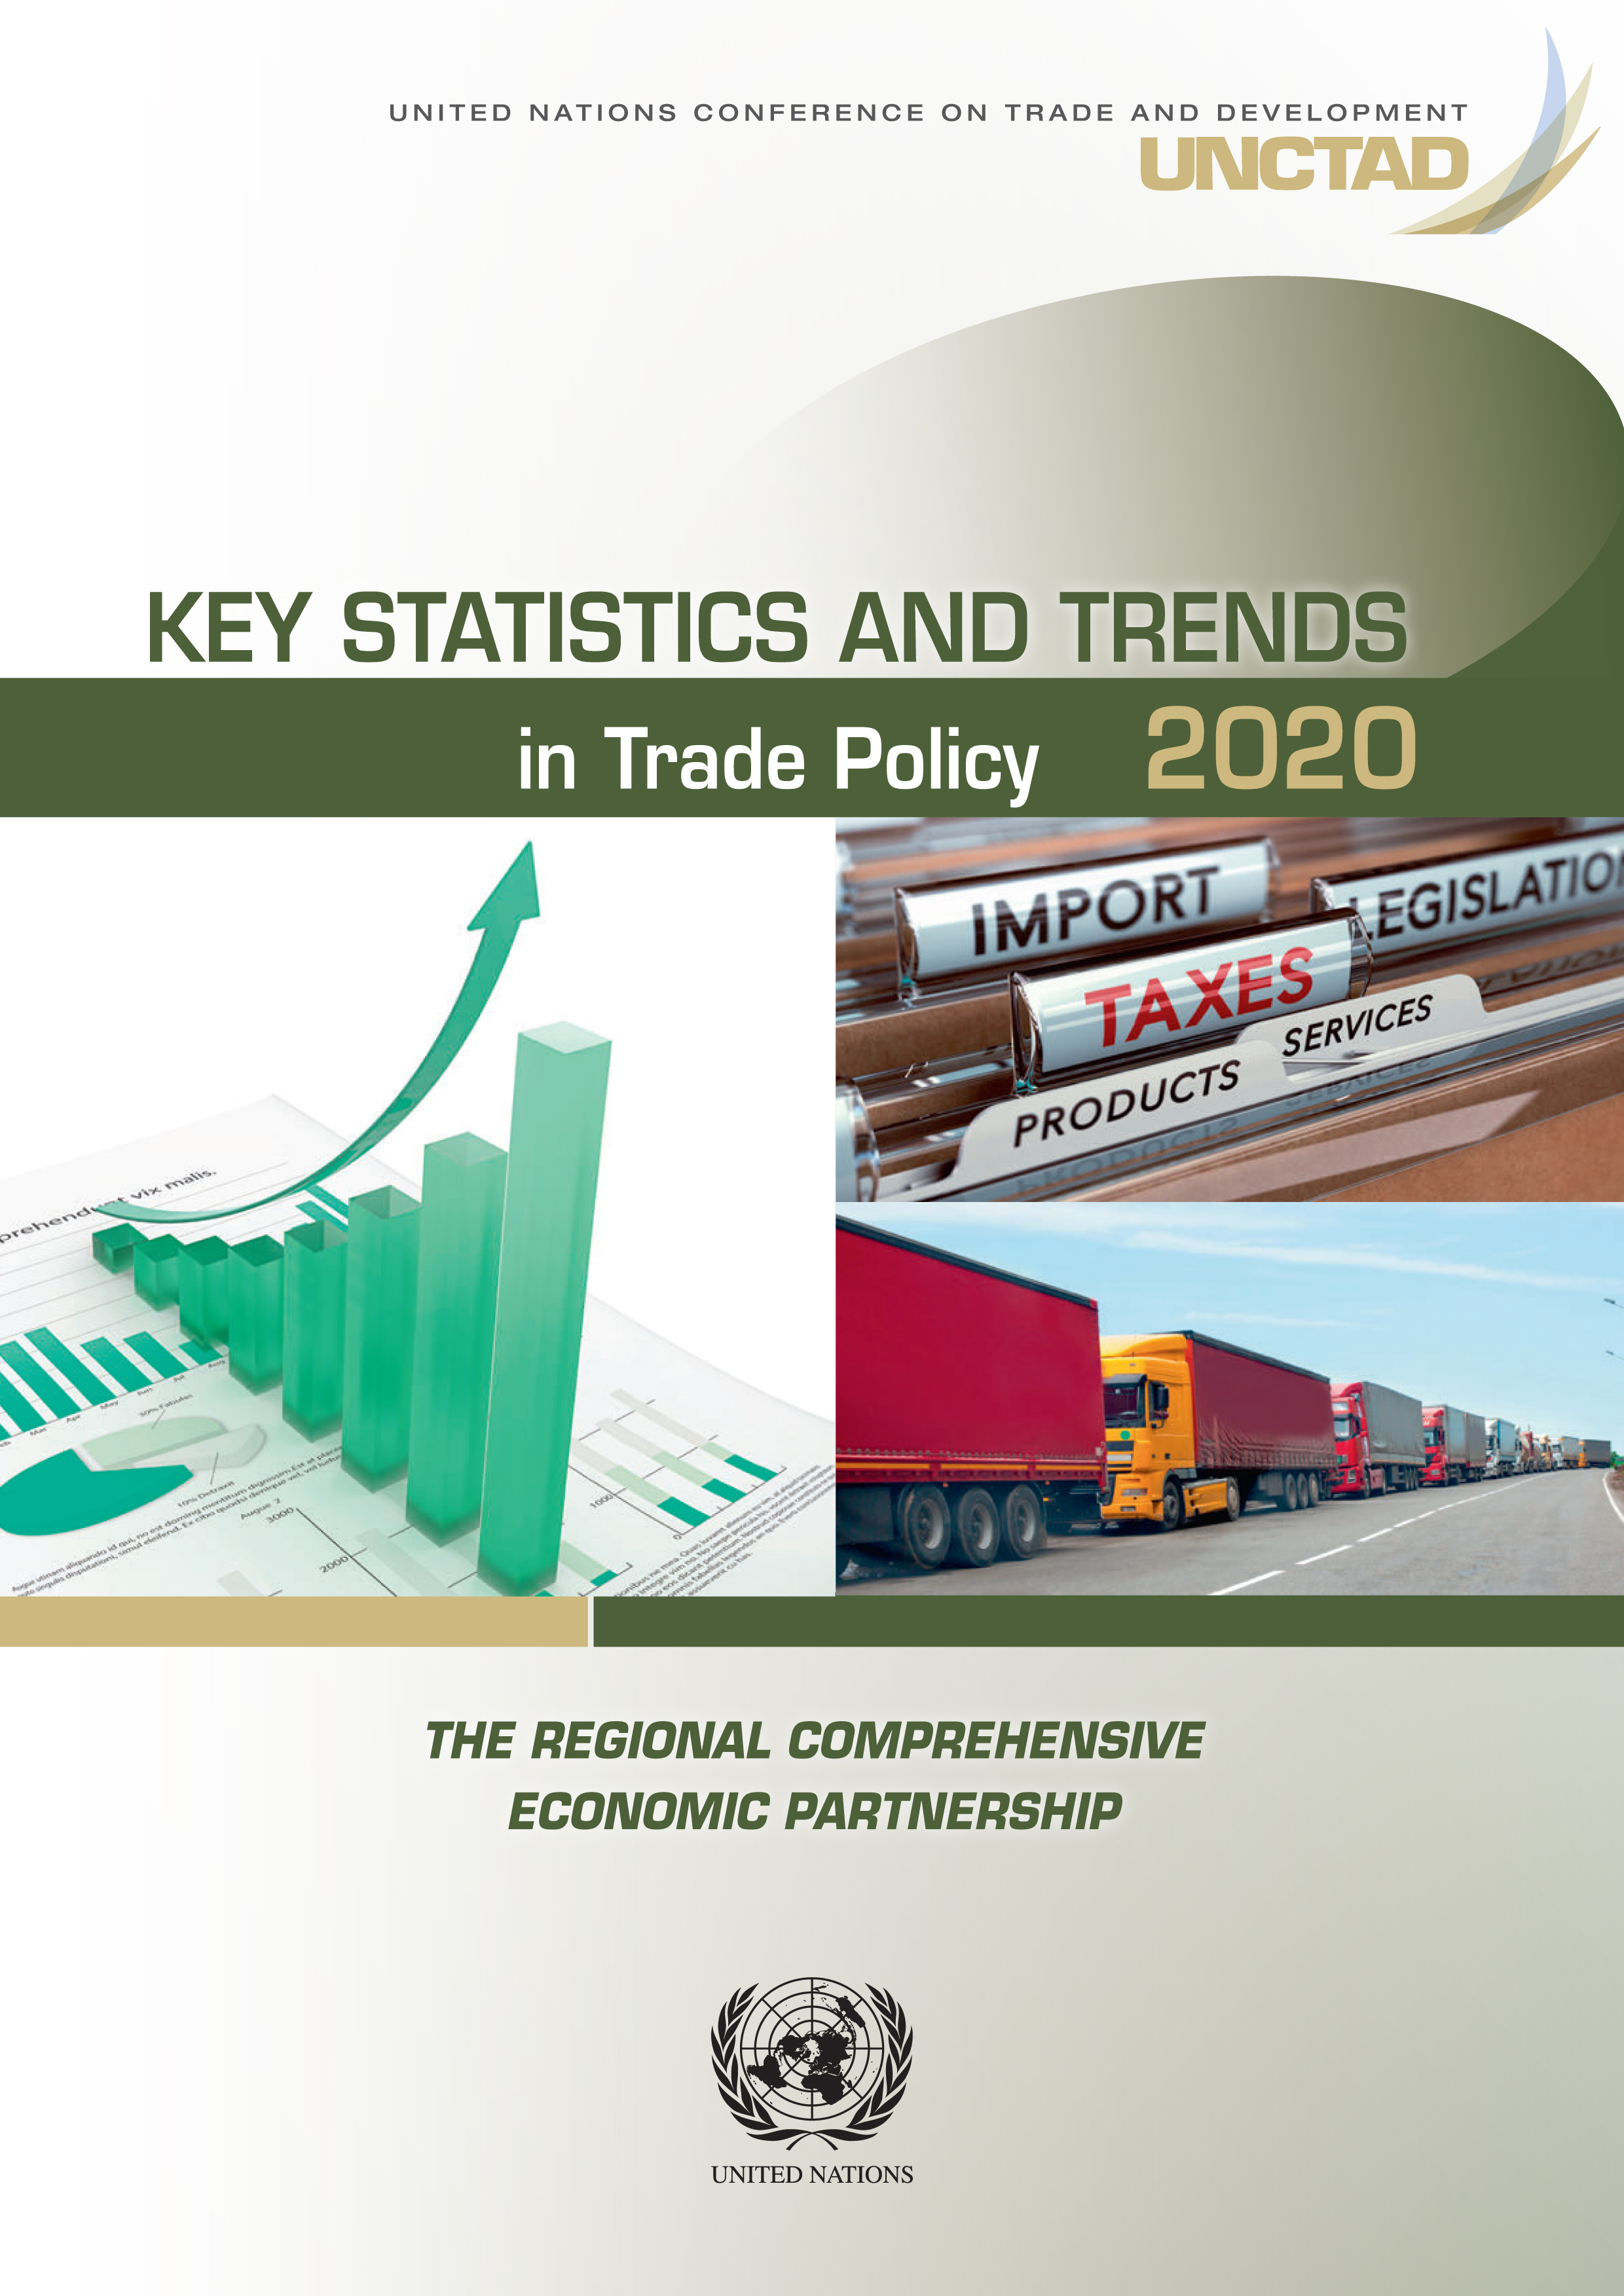 KEY STAT TRENDS TRADE POLICY 2020